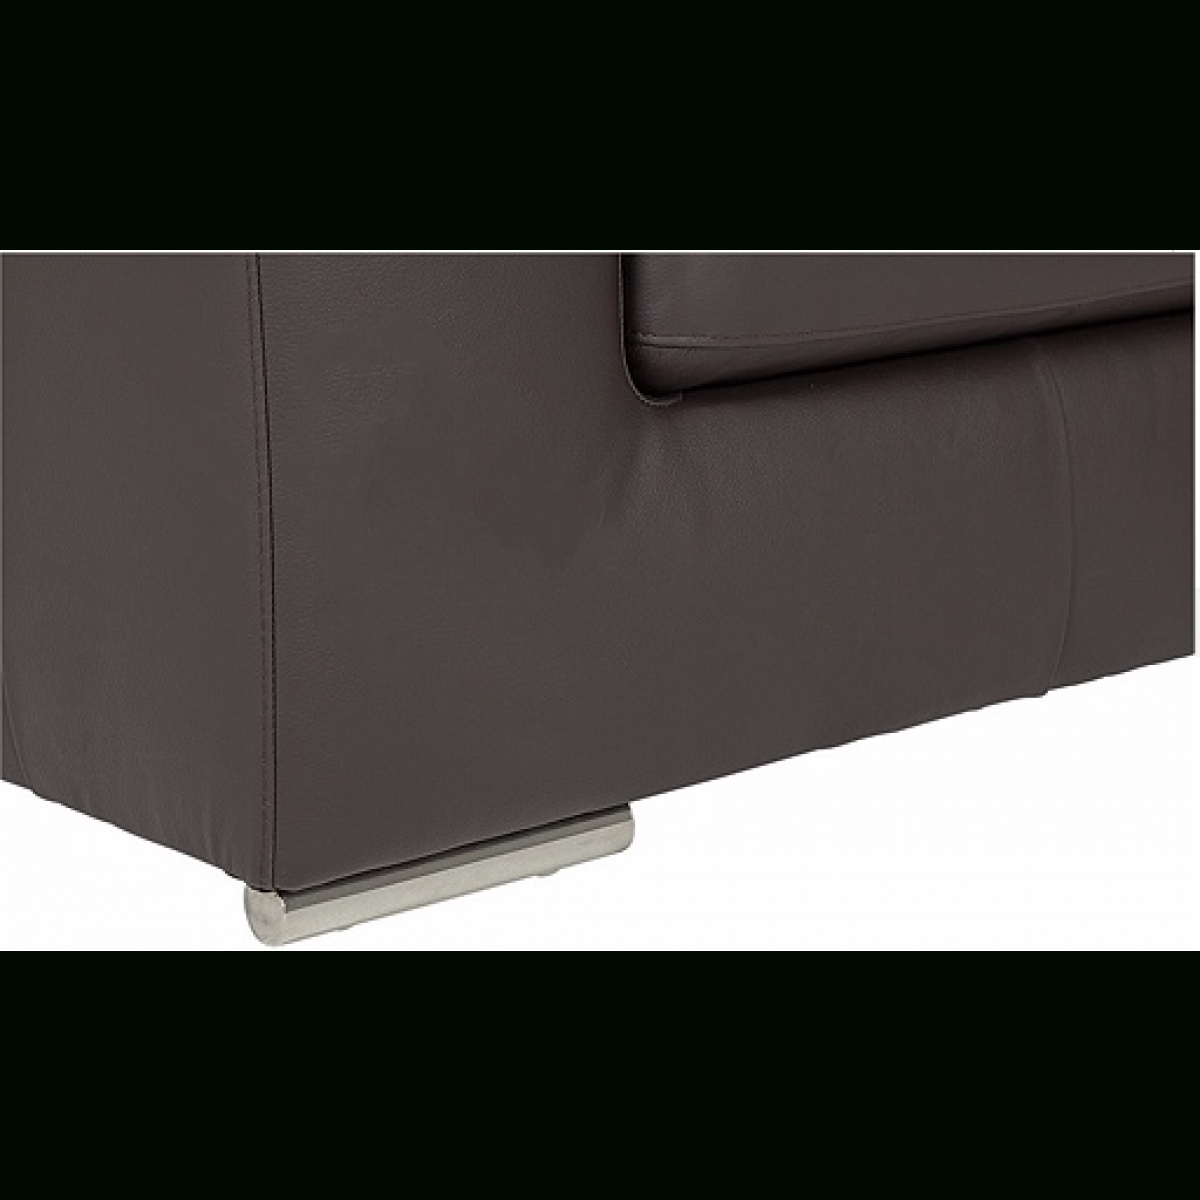 Hygena Valencia Leather Right Hand Corner Sofa - Black - Furnico pertaining to Corner Sofa Leather (Image 11 of 30)